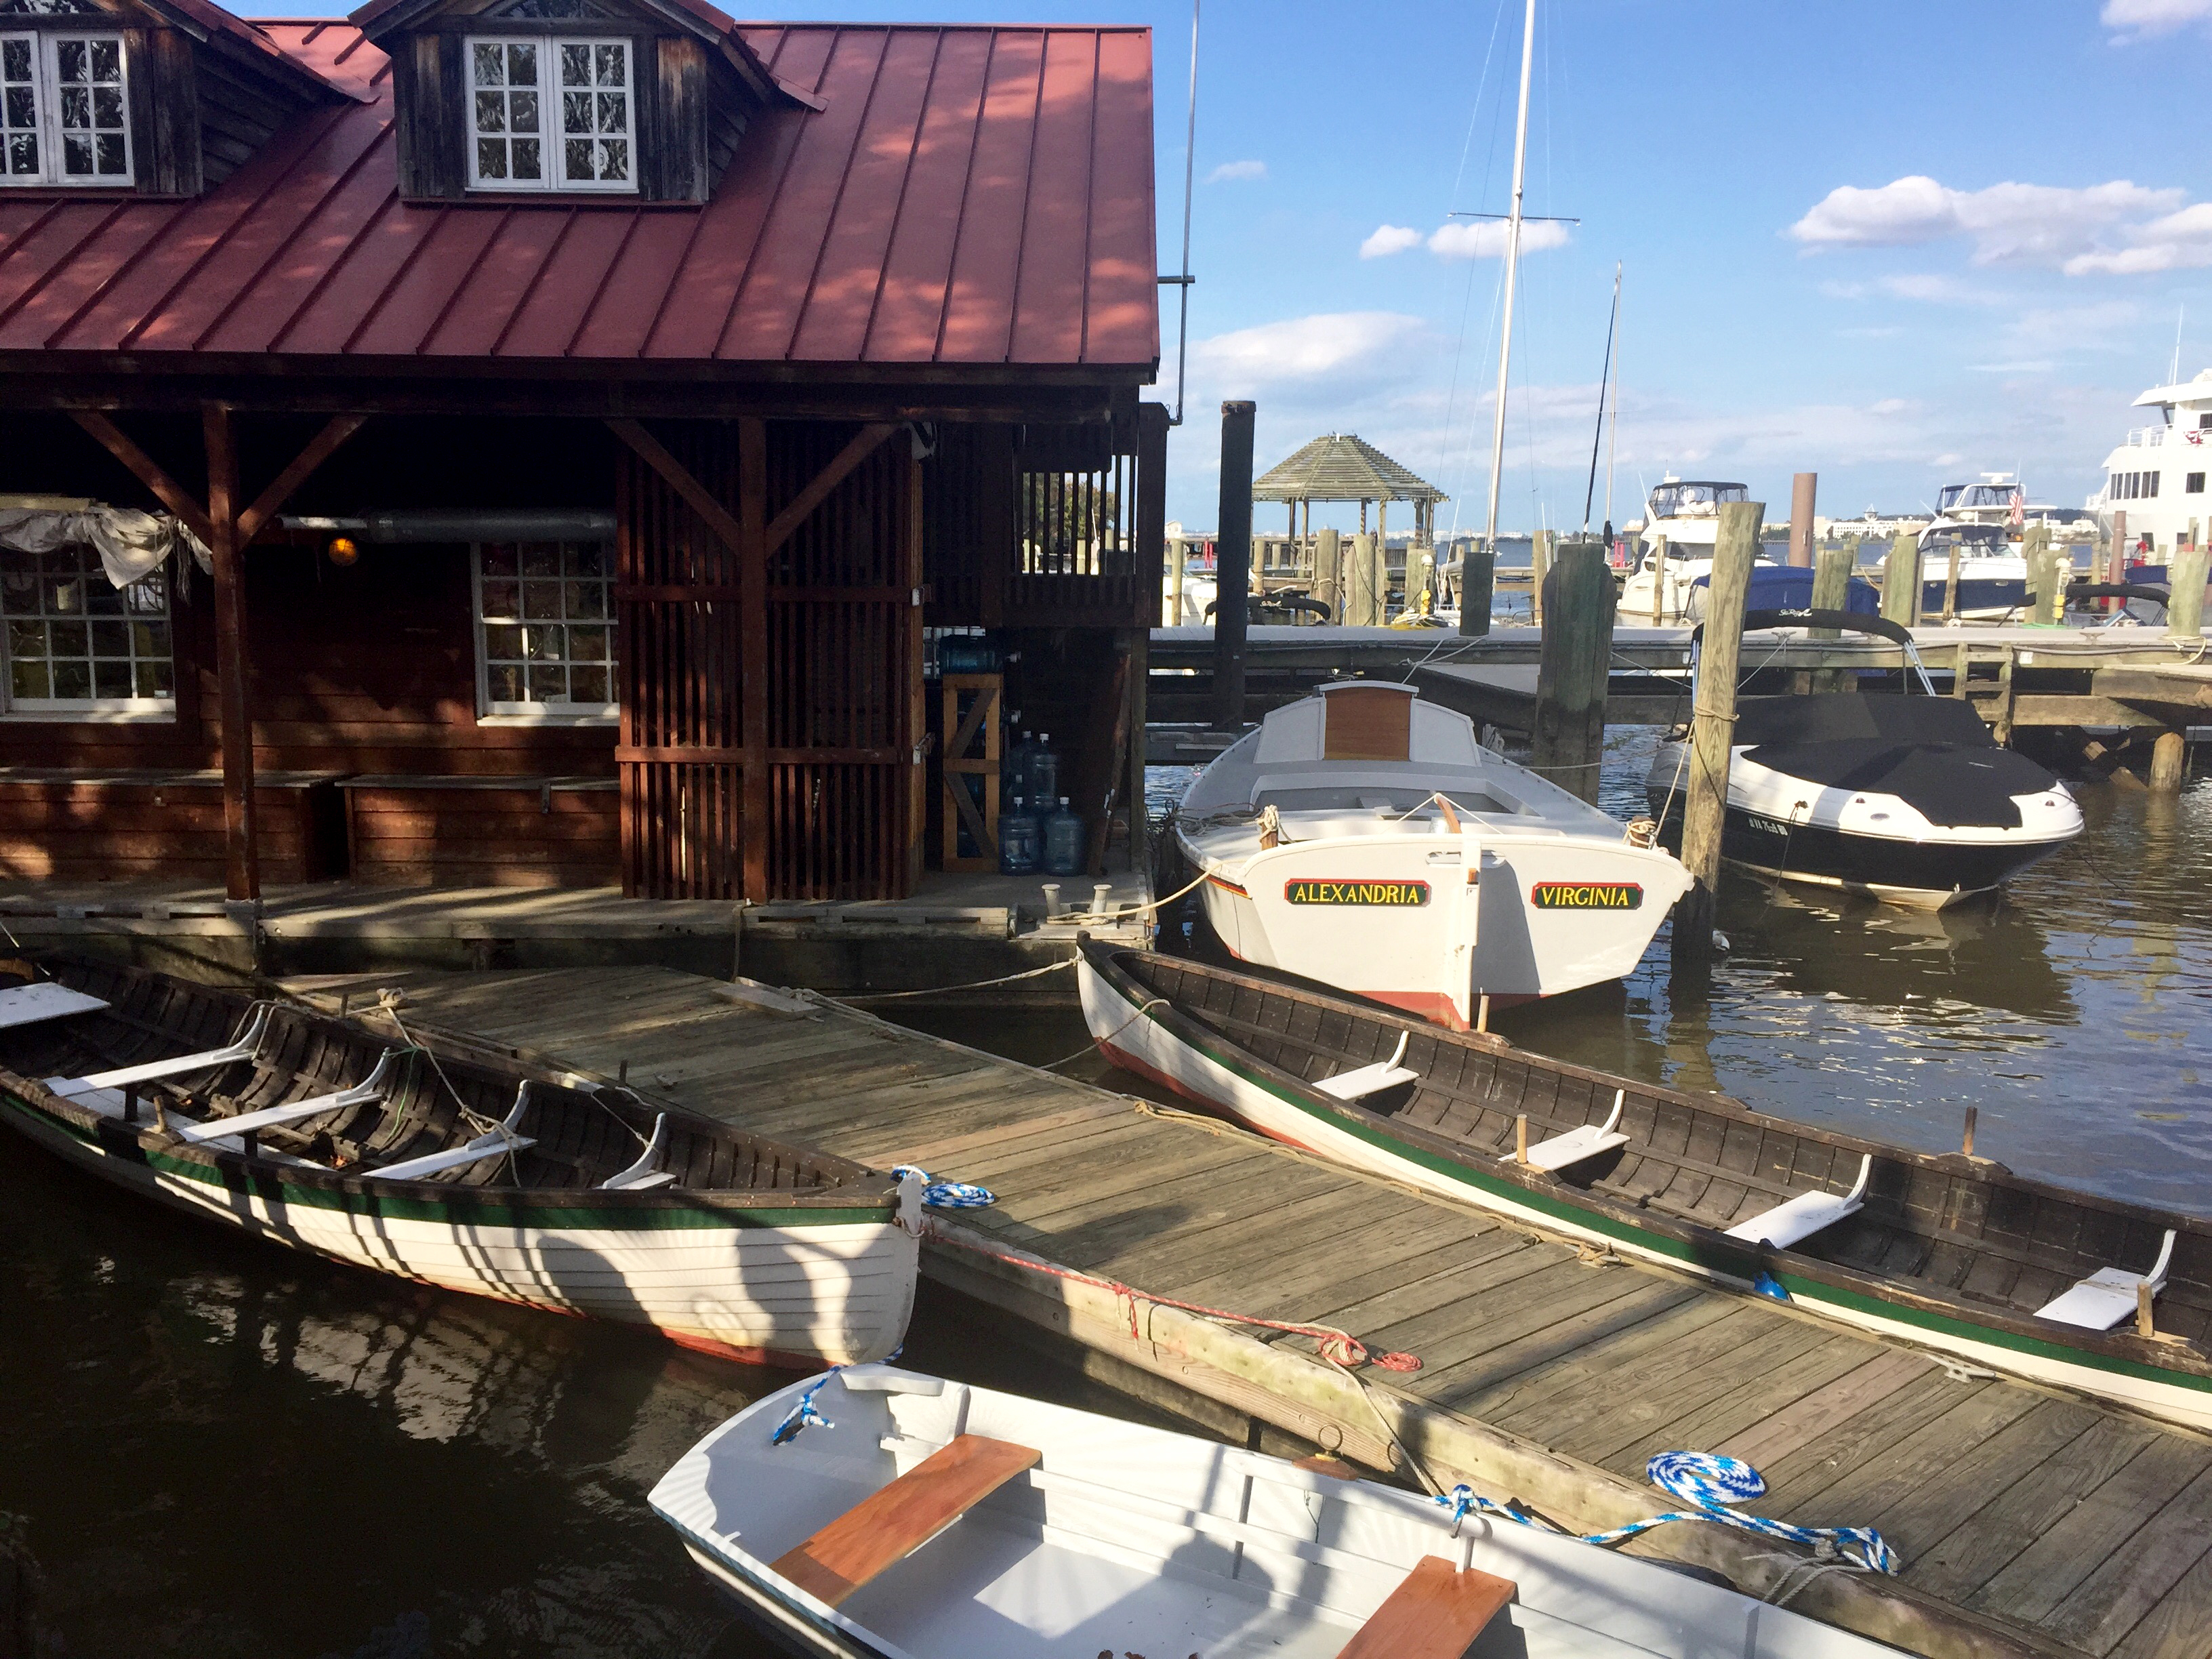 Add a description for your image